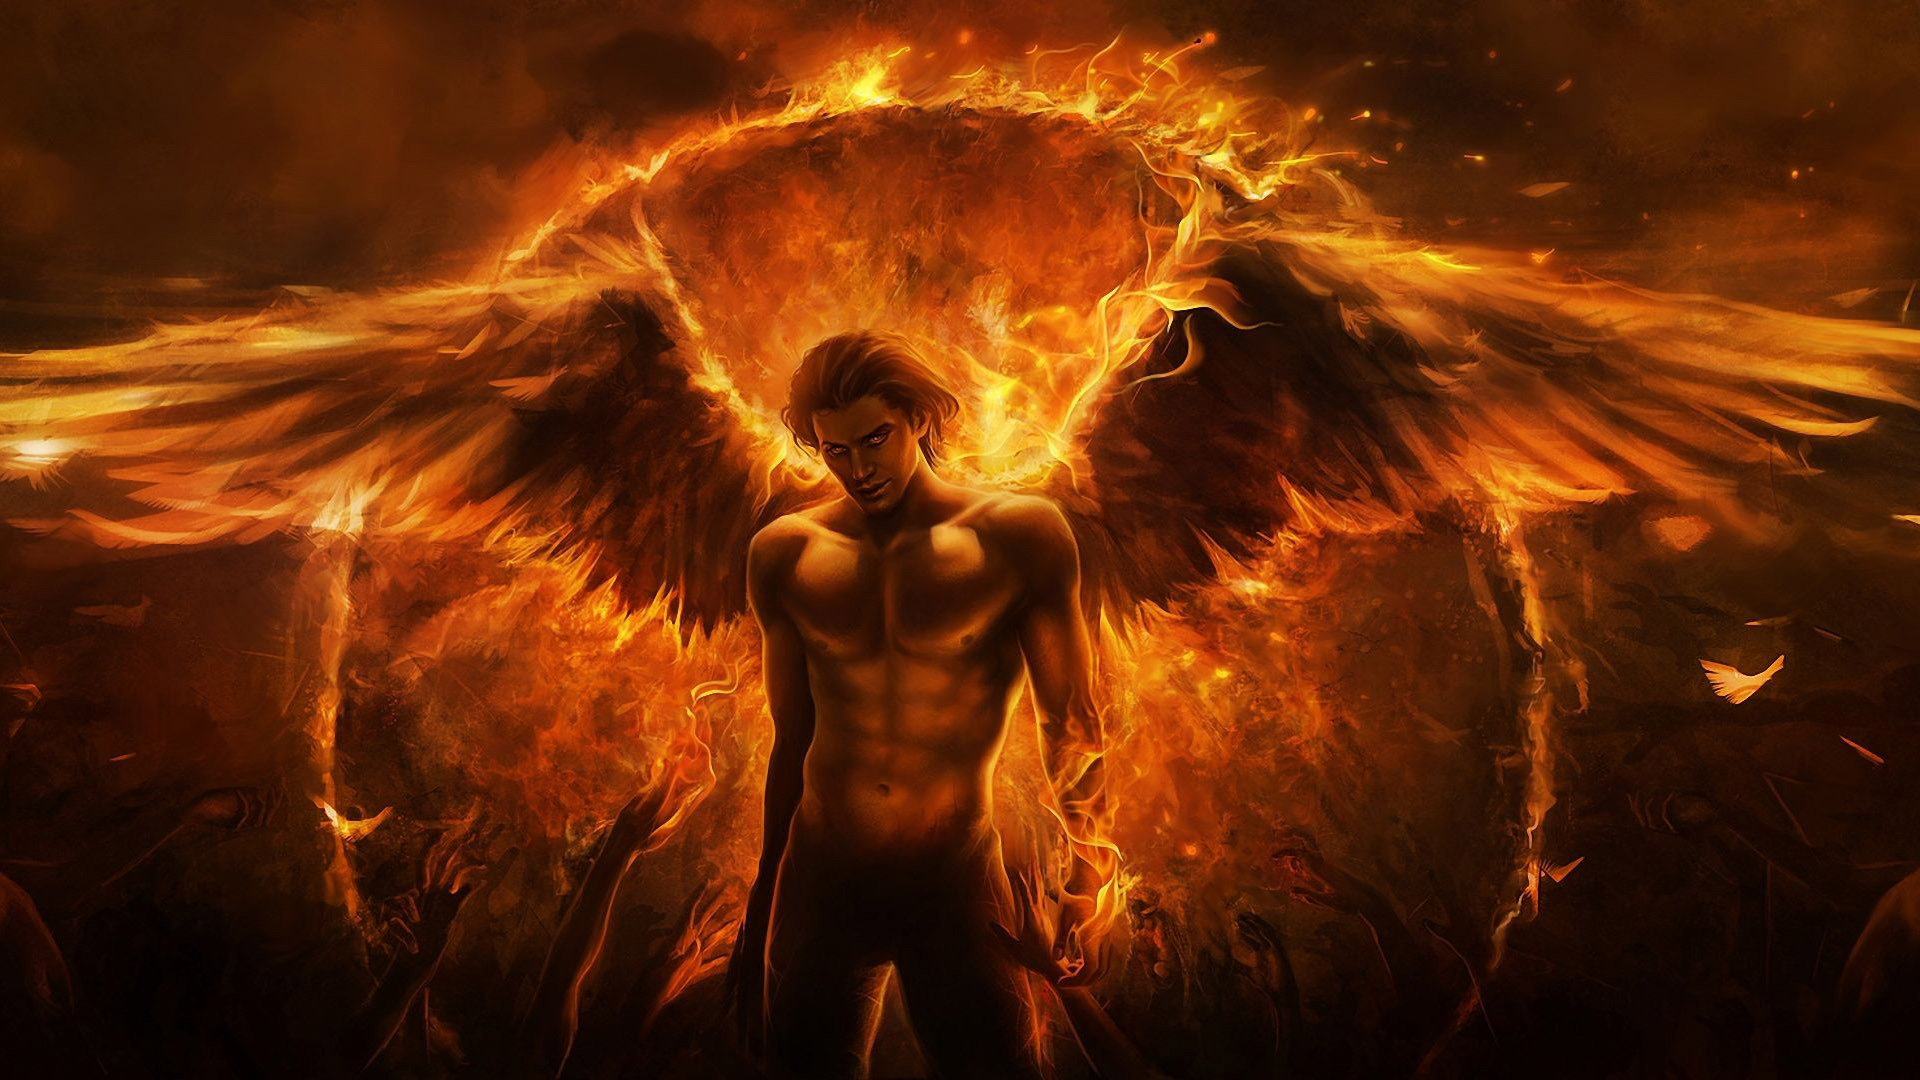 Hd Wallpapers Fantasy 79 Images: Angel Wallpapers High Quality